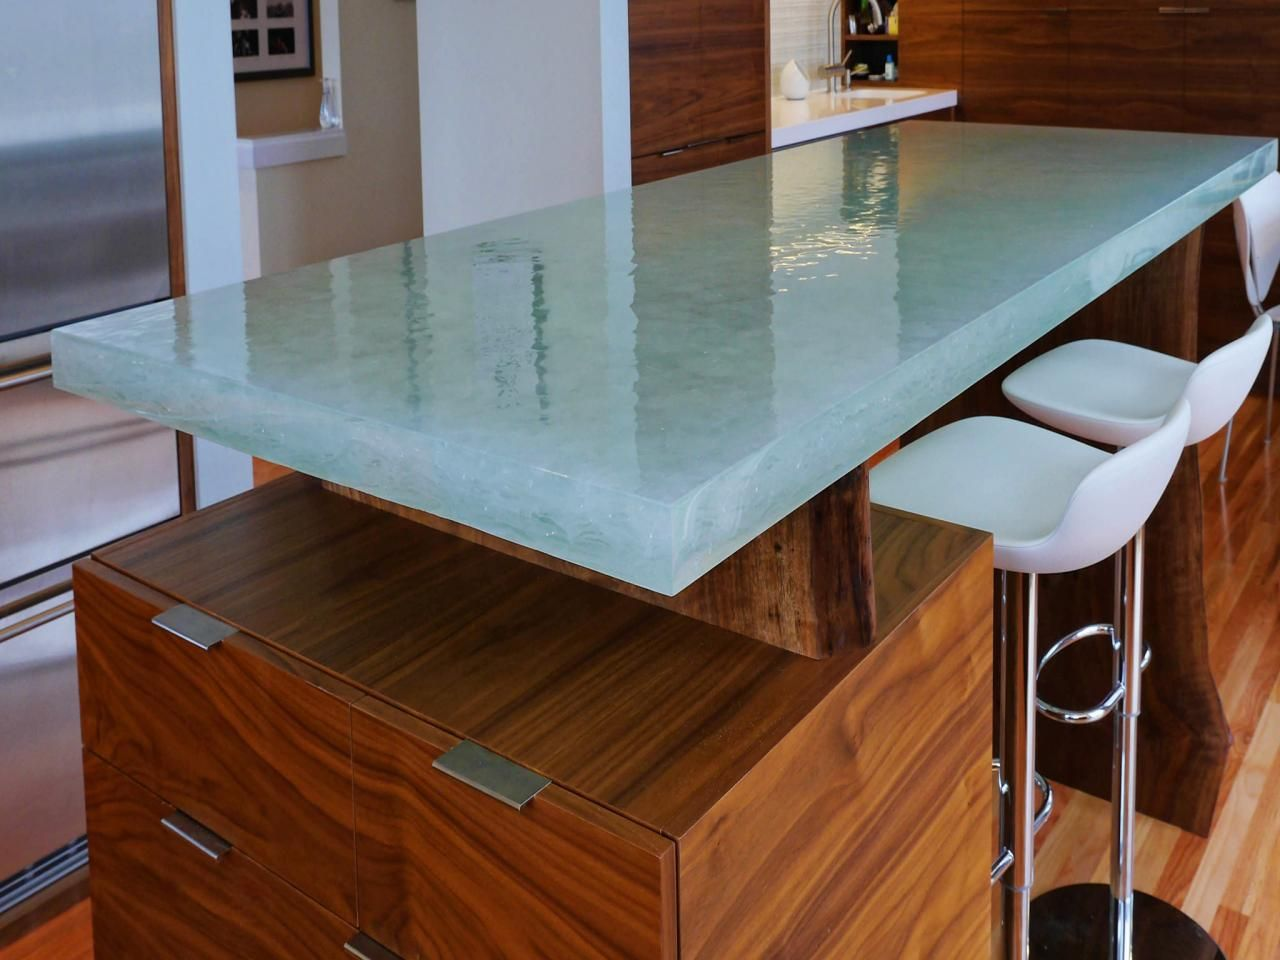 Best Countertops | Countertop, Hgtv and Kitchen countertop materials